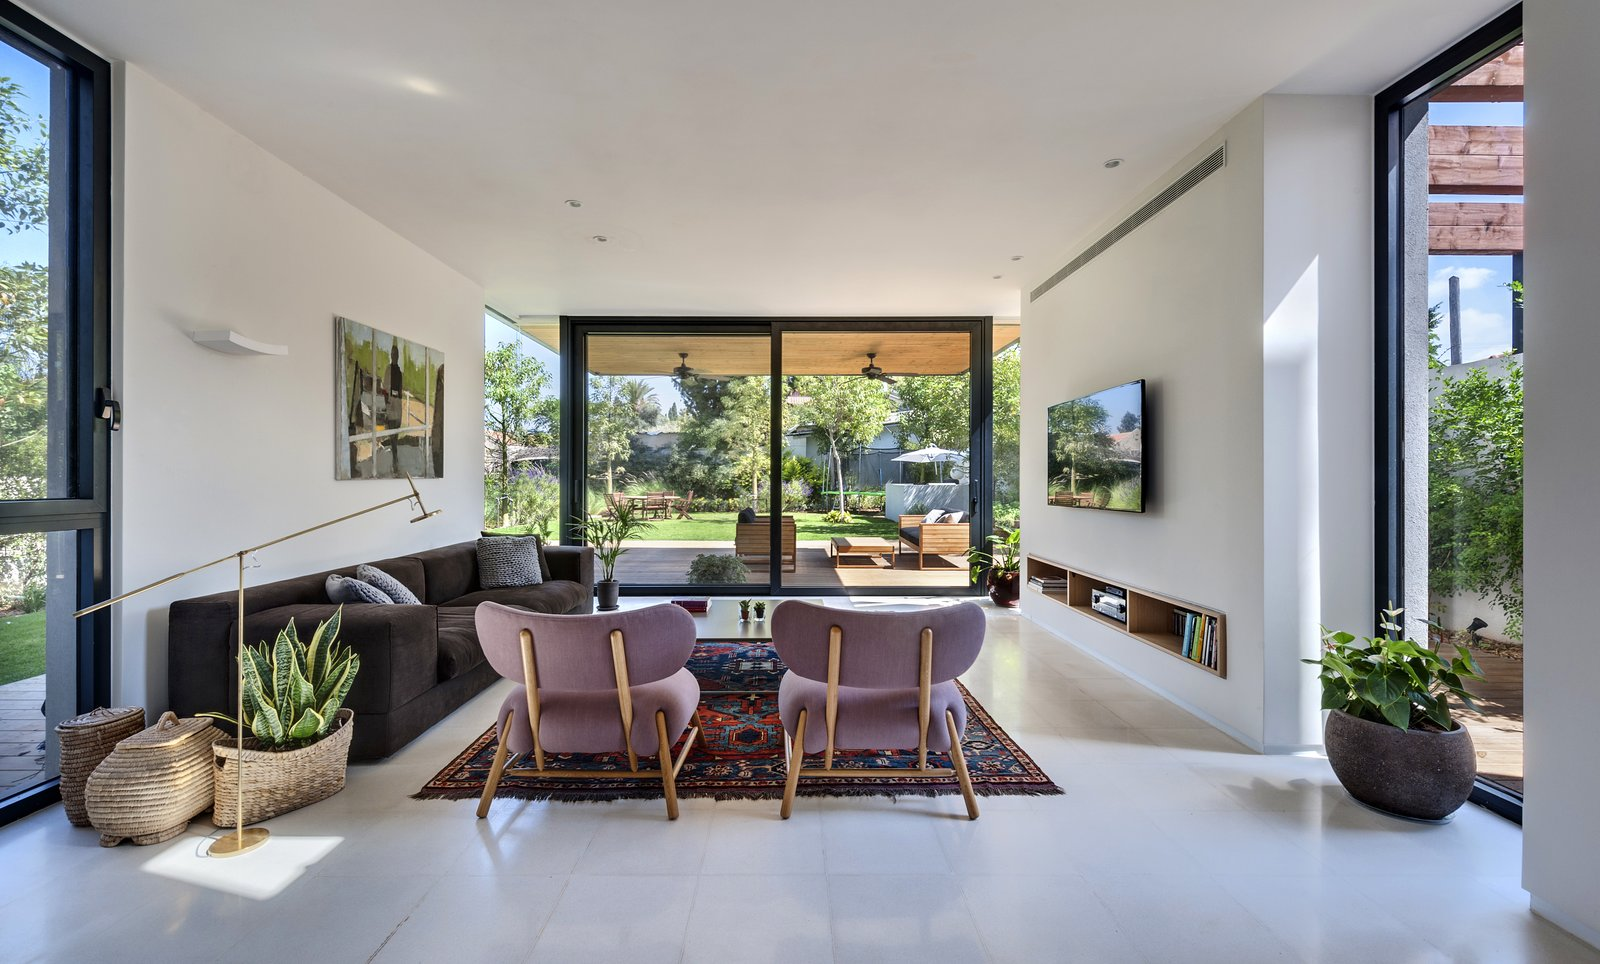 Living Room, Floor Lighting, Limestone Floor, Sofa, Chair, and Coffee Tables Ravit Dvir Architecture and Design  The House in Harutzim